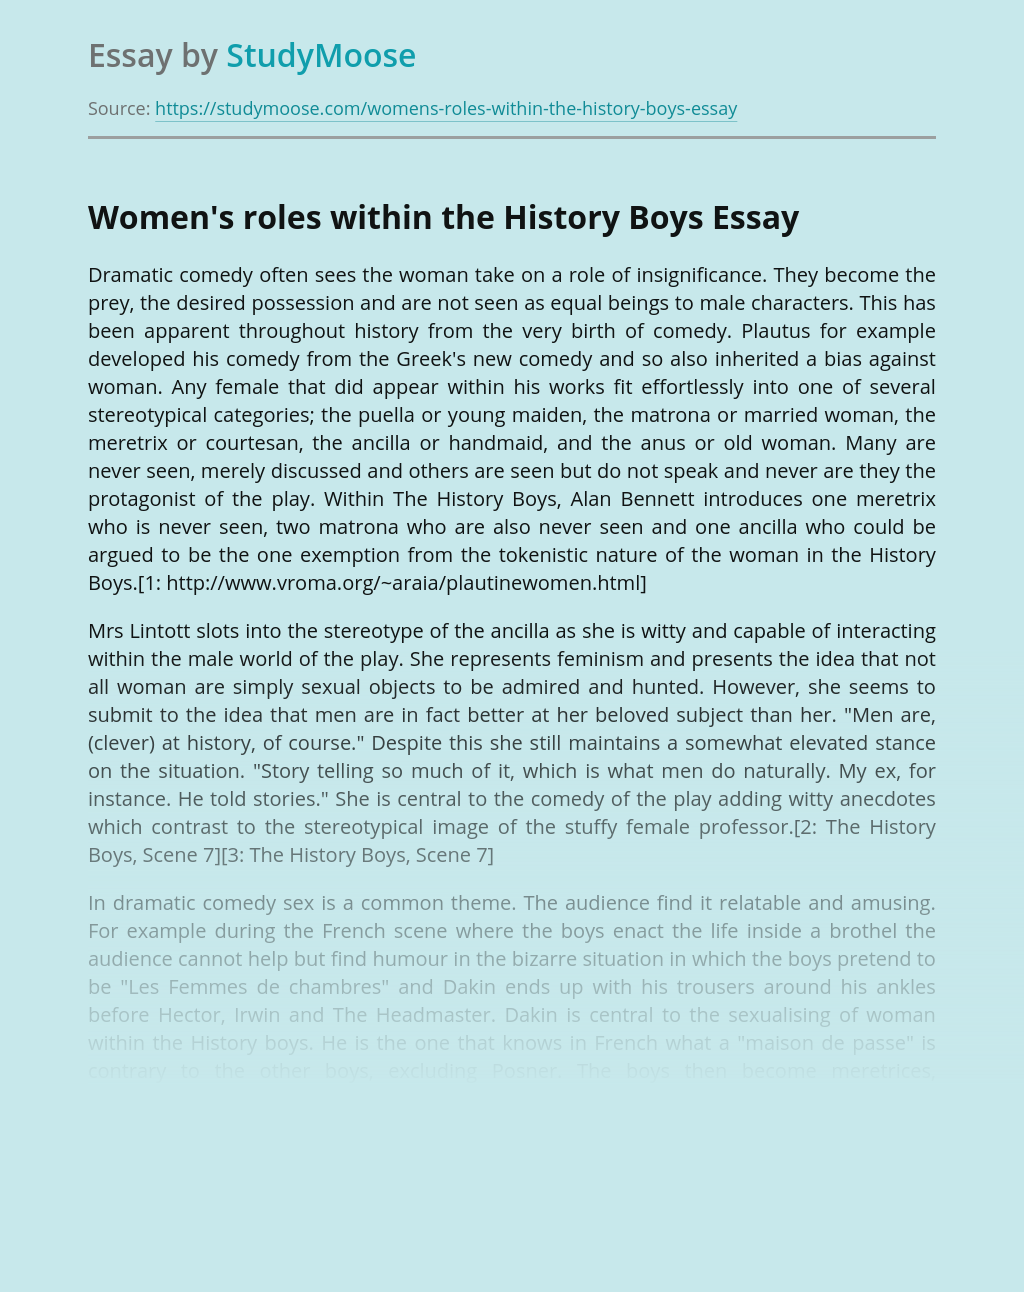 Women's roles within the History Boys